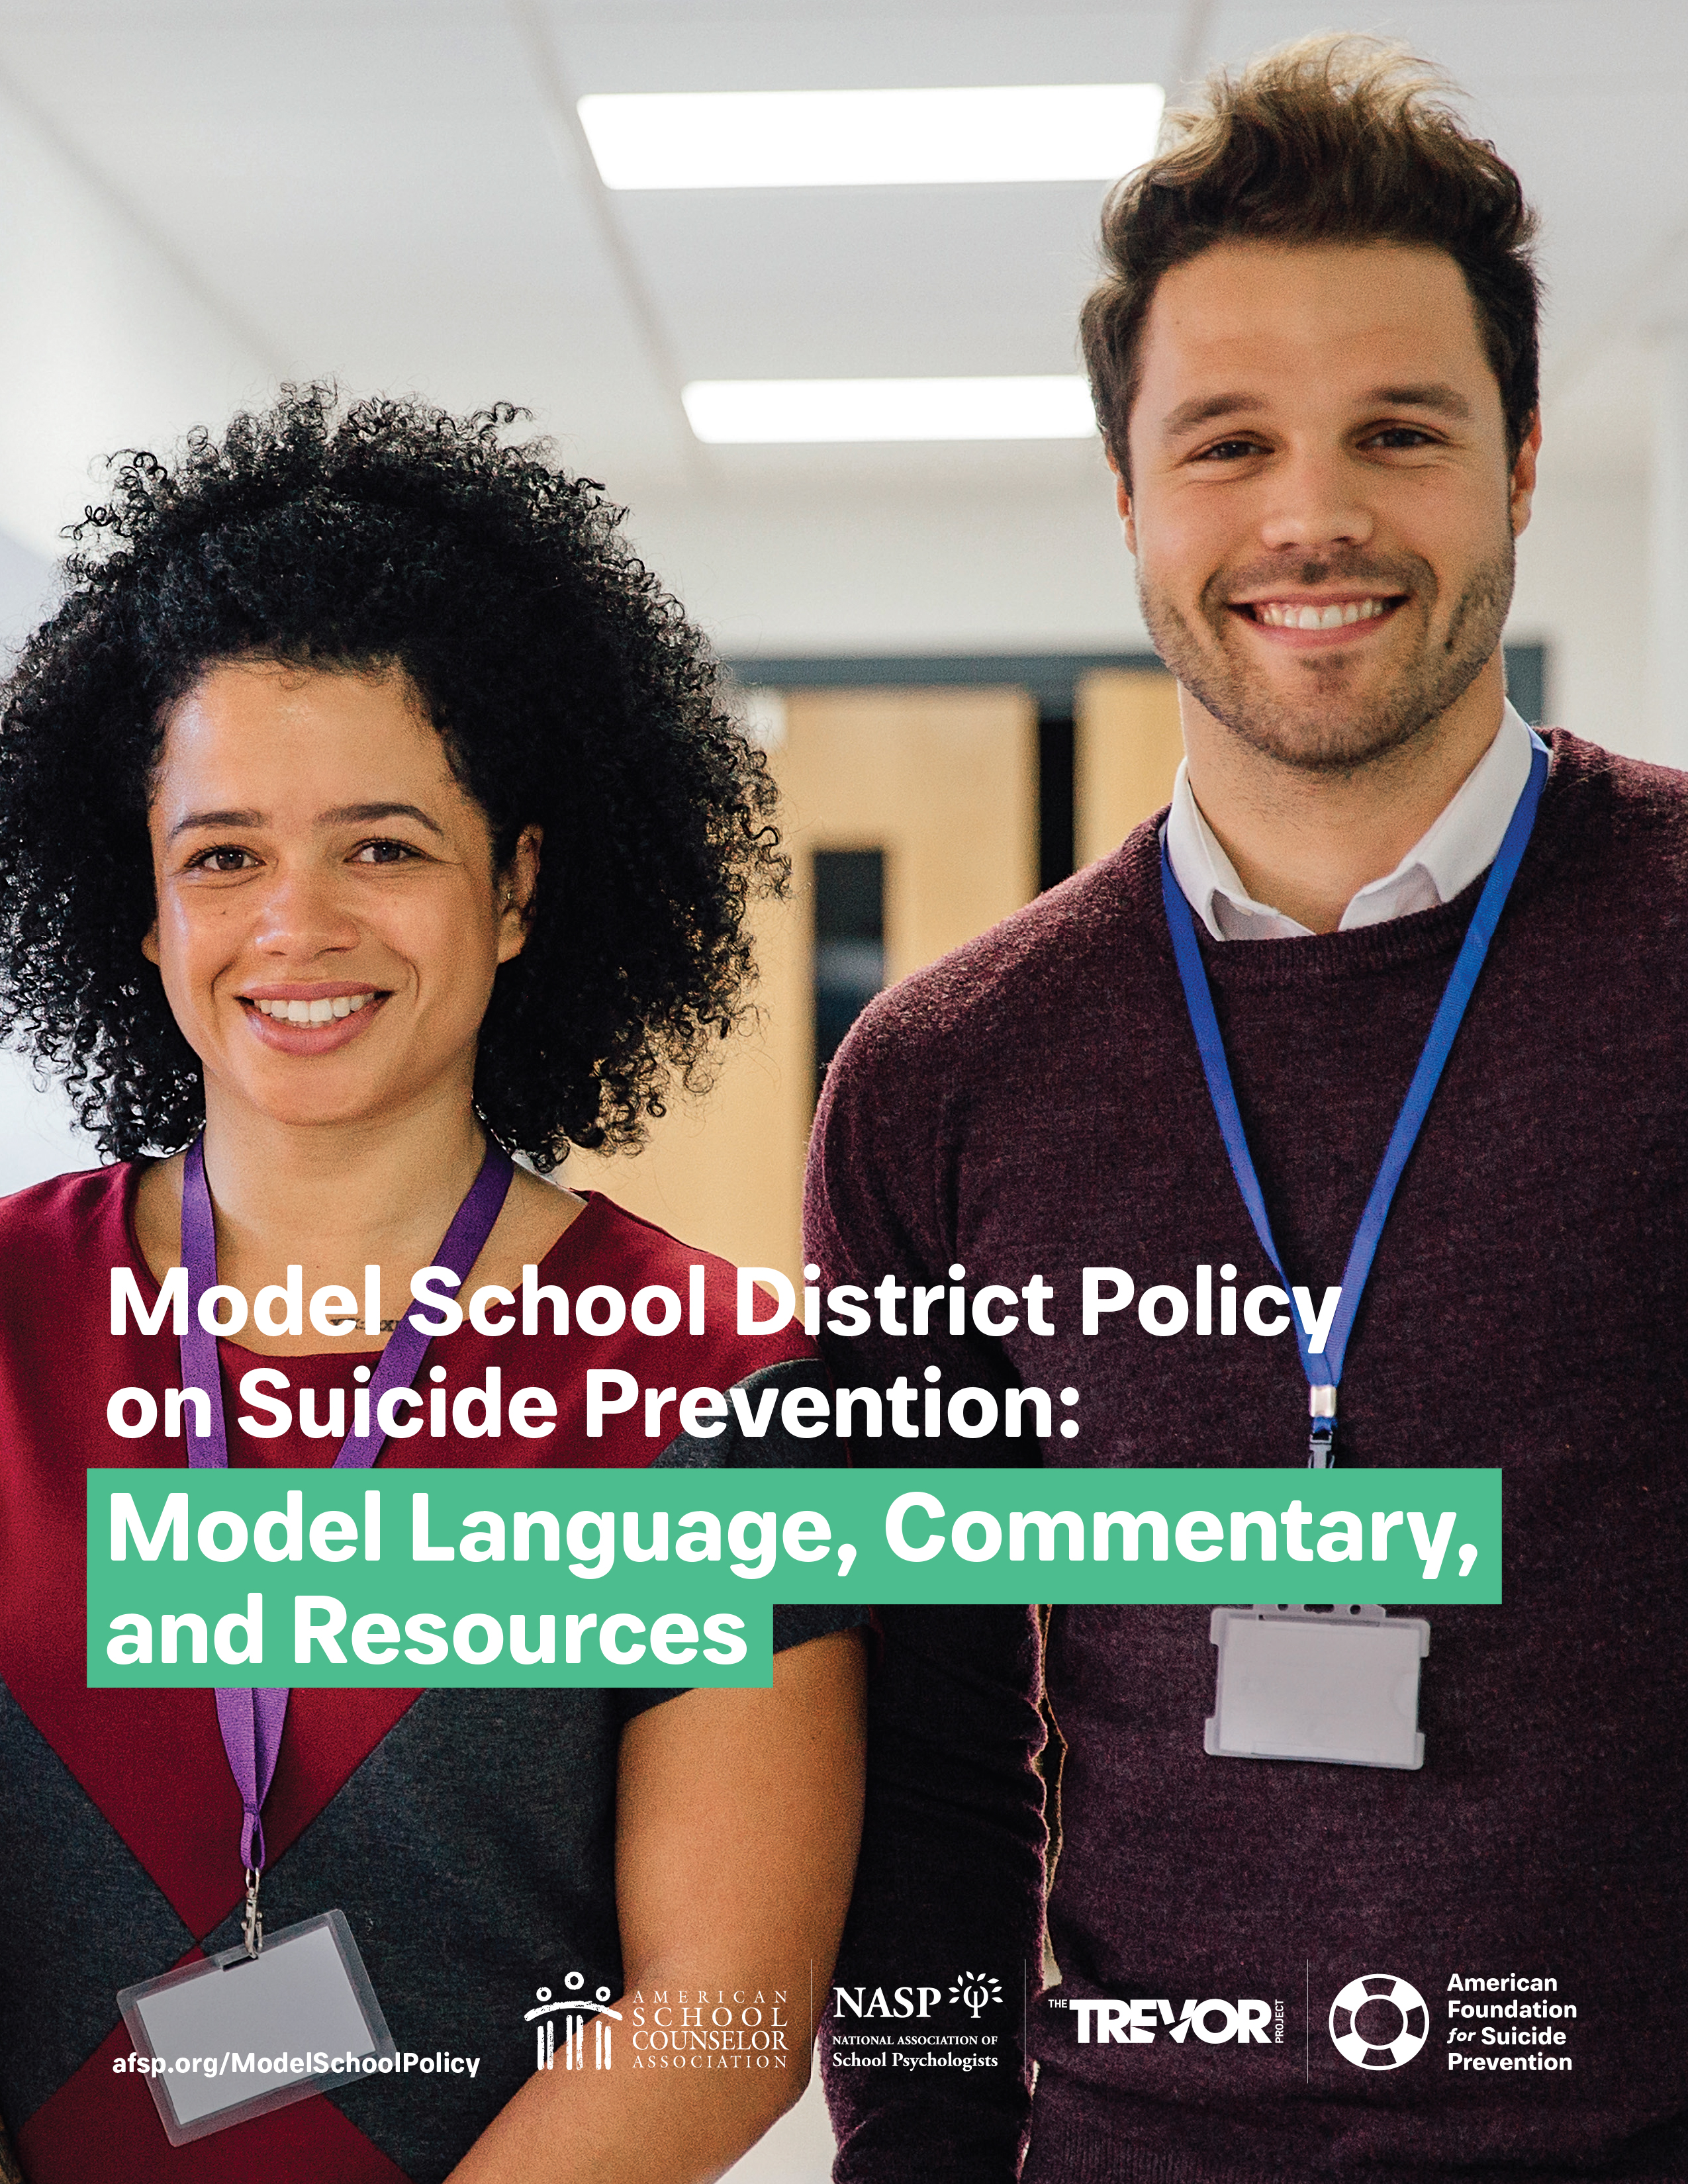 Model School District Policy on Suicide Prevention: Model Language, Commentary, and Resources